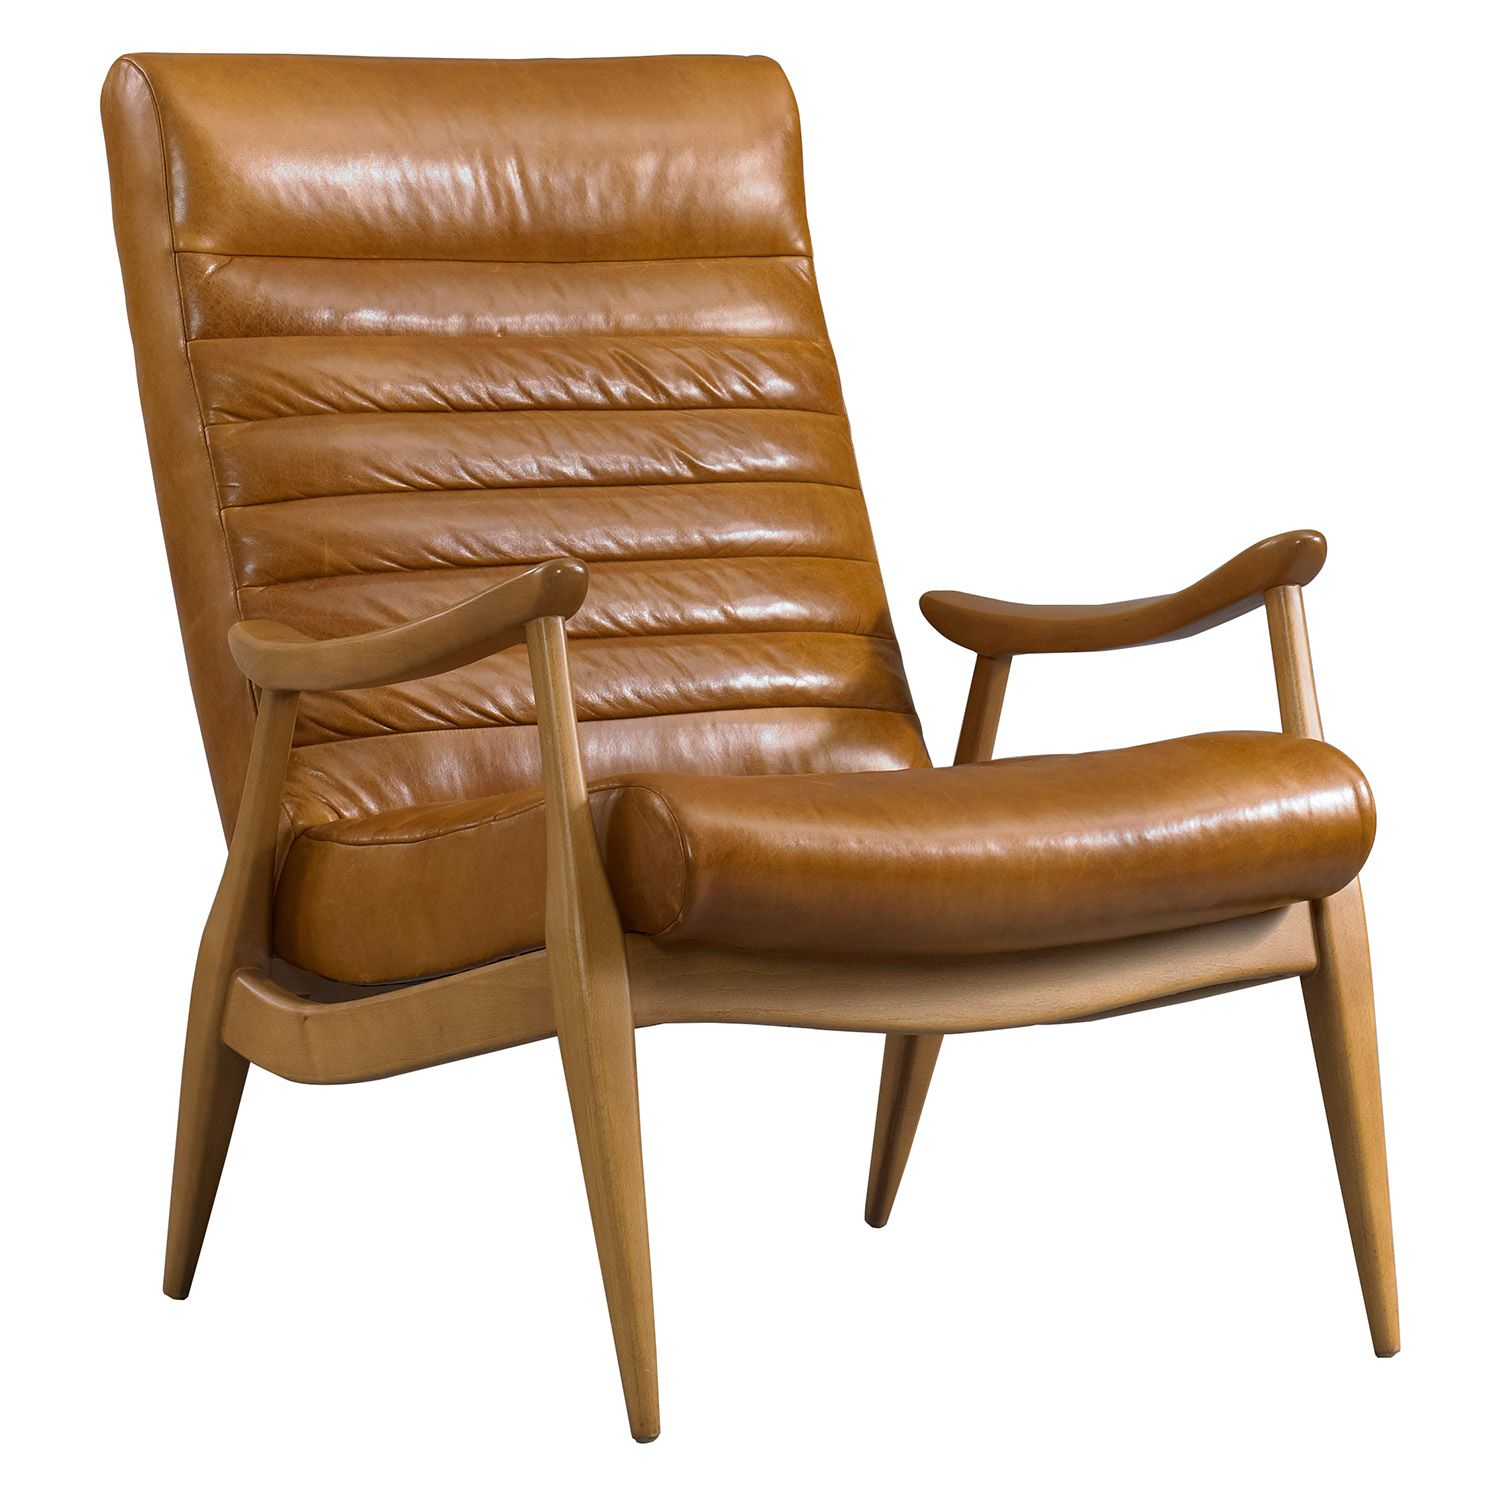 Captivating DwellStudio Hans Leather Chair @Zinc_Door Something Similar To This In  Fabric